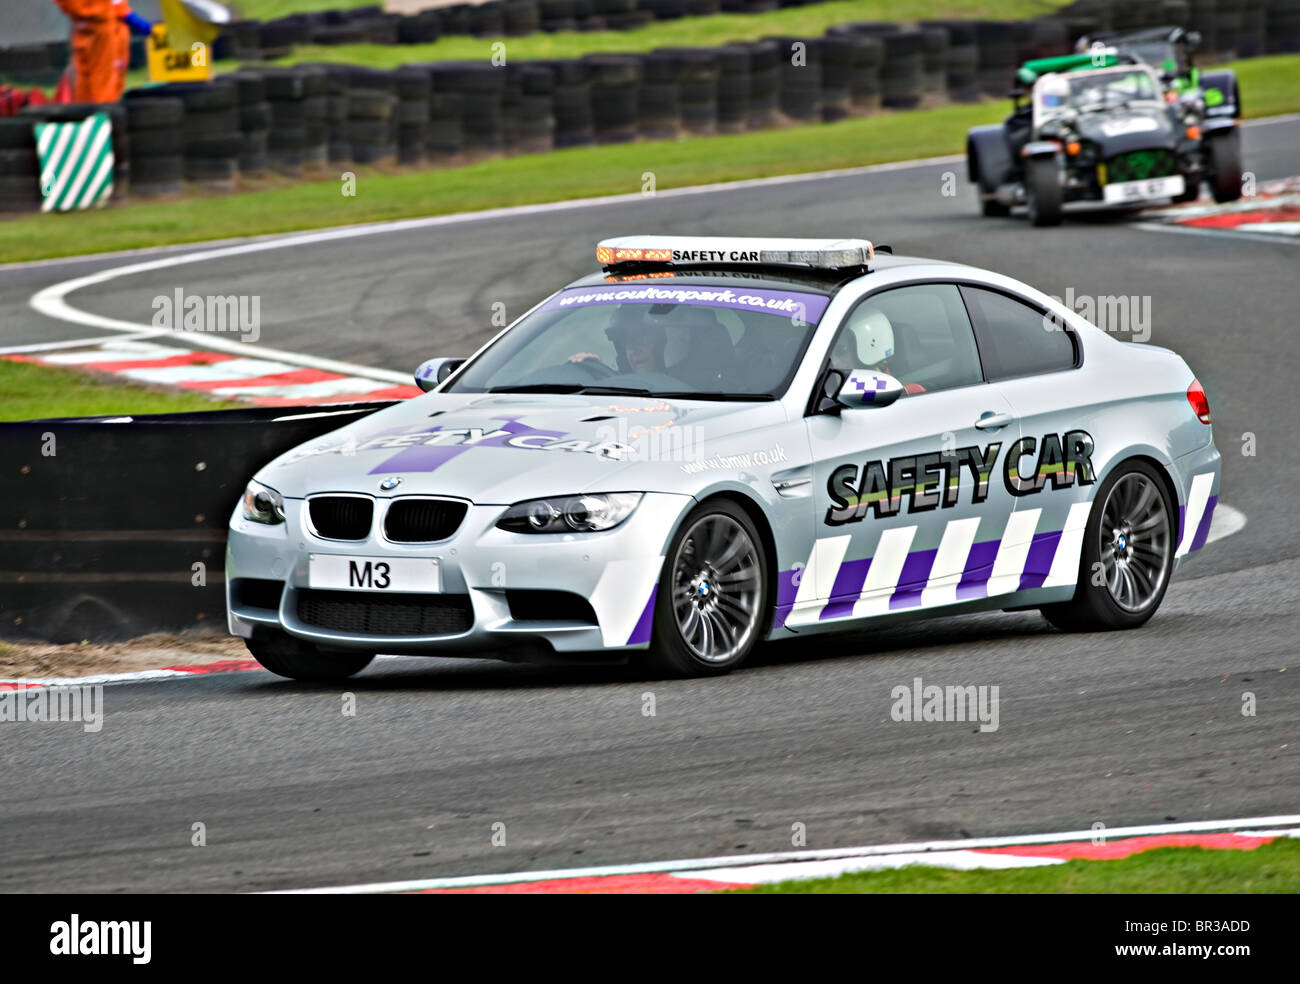 Bmw M3 Safety Car Deployed At Oulton Park Motor Racing Circuit With Stock Photo Alamy